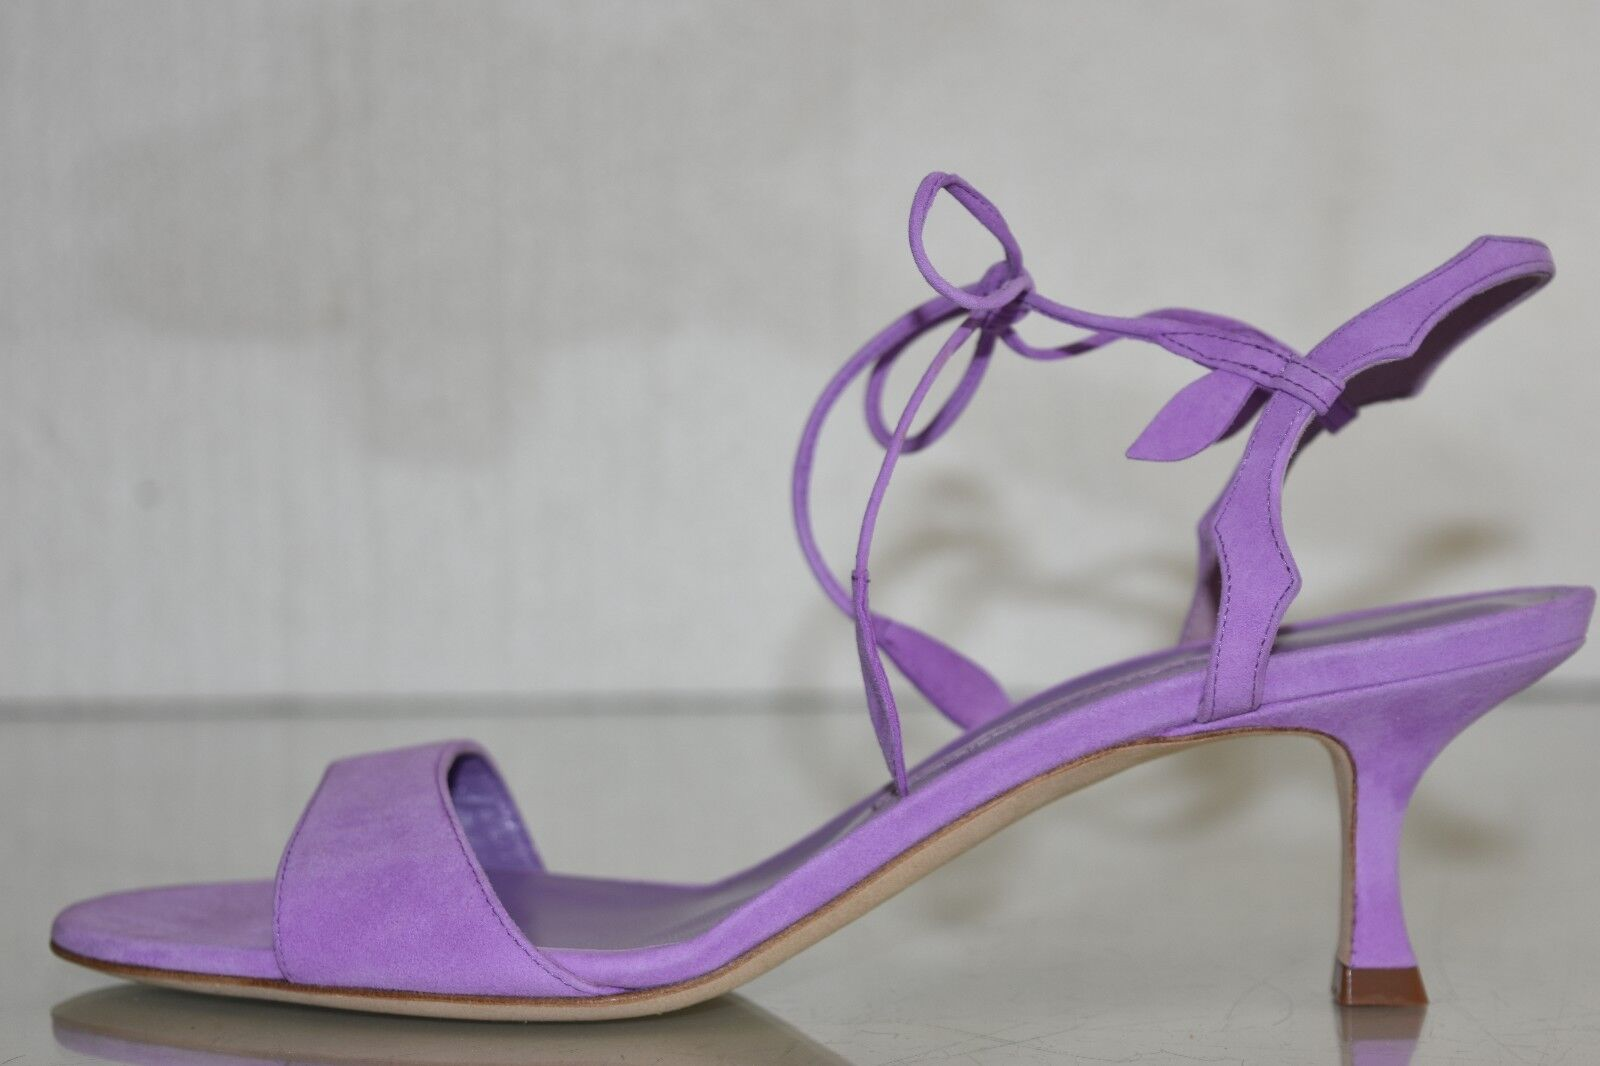 NEW Manolo Blahnik ZOULIPLAIN 50 Kitten Sandals LAVENDER Purple Suede shoes 40.5